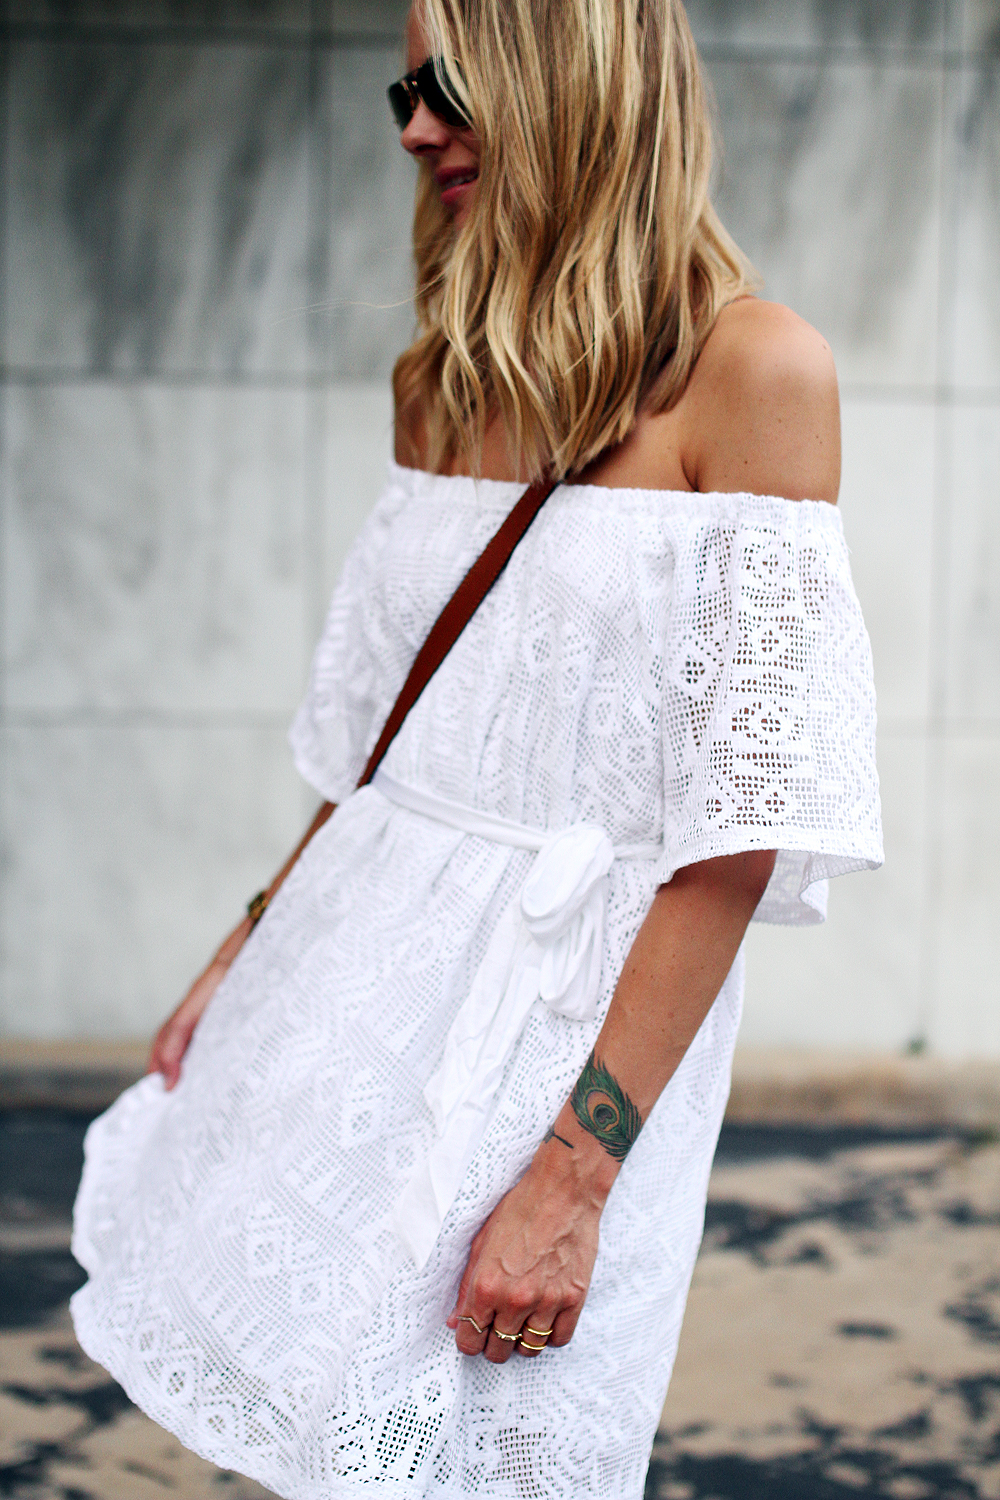 fashion-jackson-ray-ban-gold-aviatro-sunglasses-banana-republic-white-lace-off-the-shoulder-dress